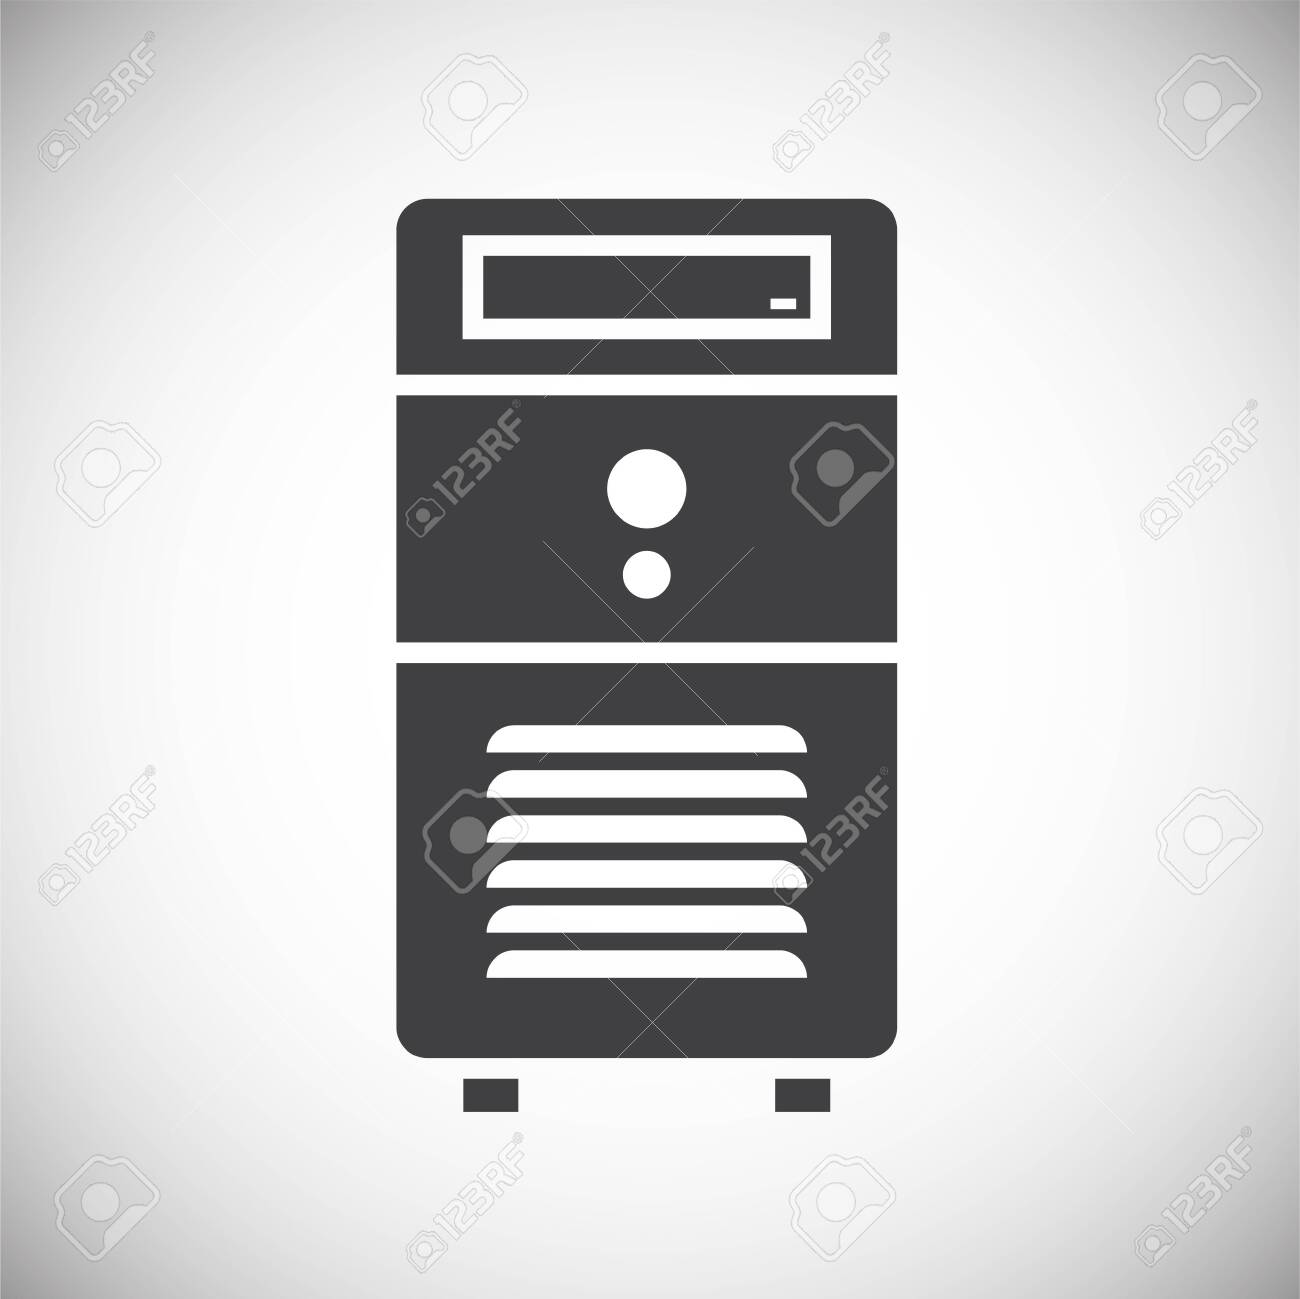 Computer hardware icon on background for graphic and web design. Simple illustration. Internet concept symbol for website button or mobile app - 150814558